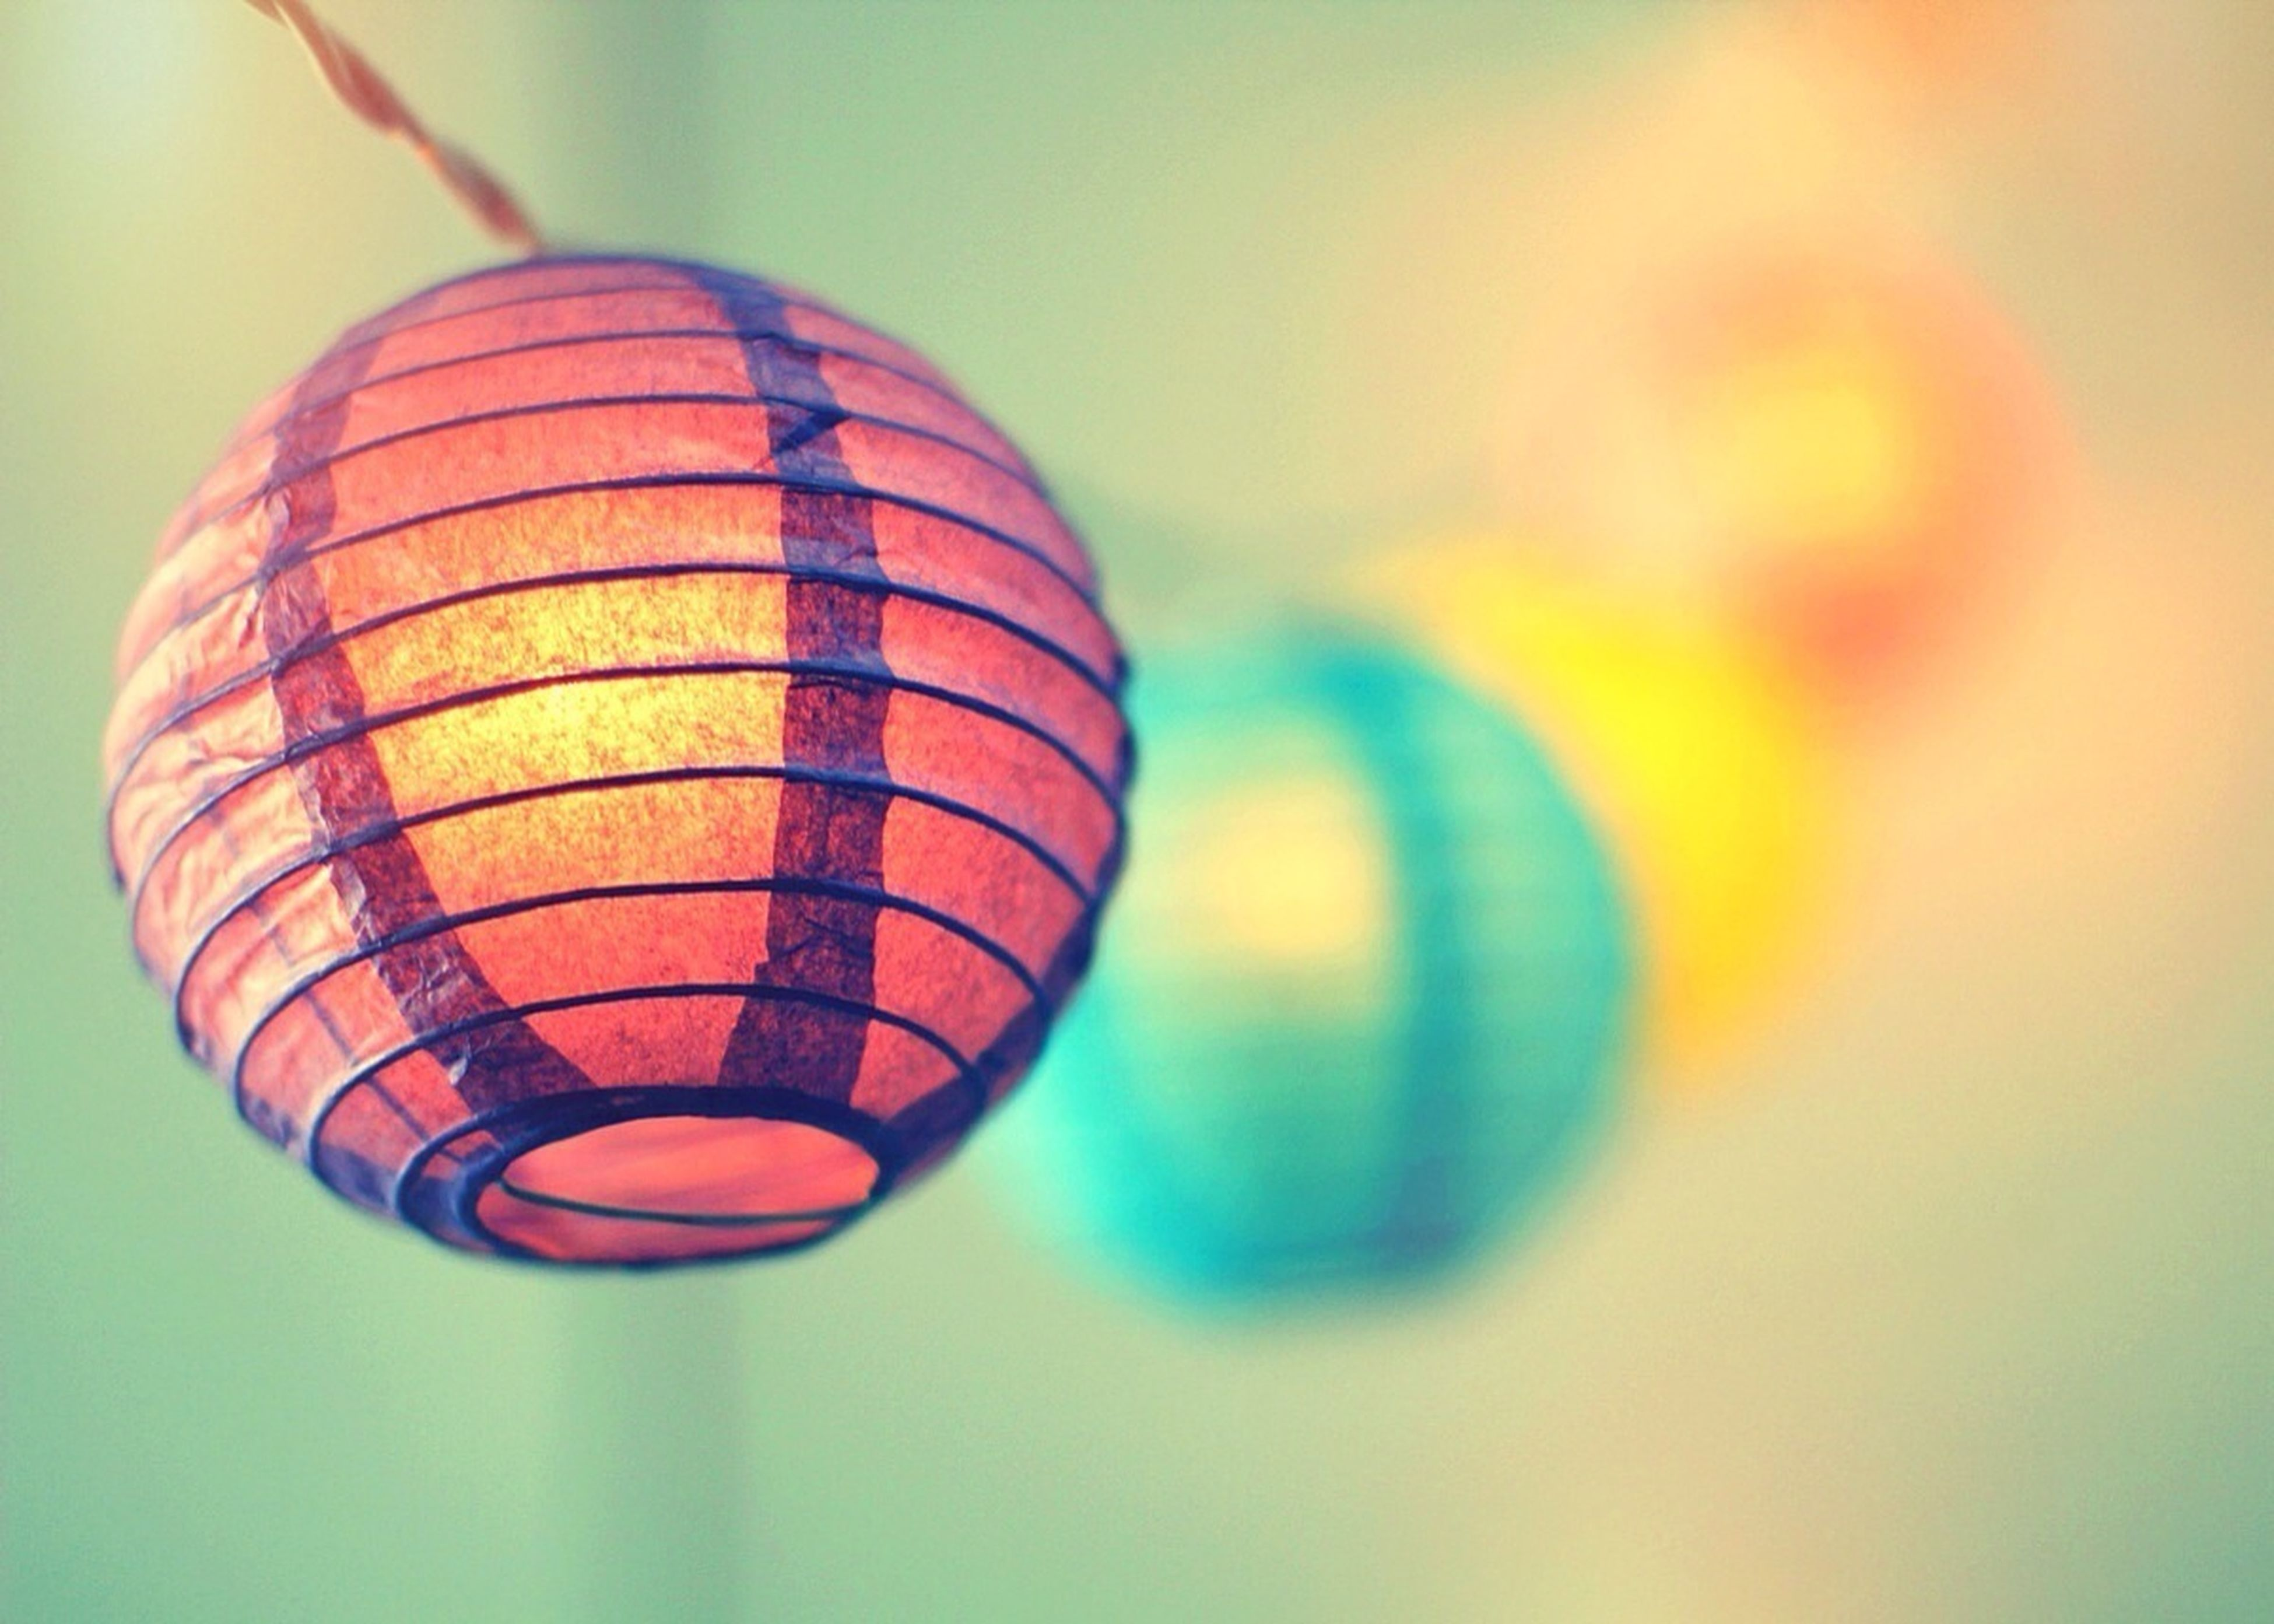 multi colored, sphere, mid-air, close-up, low angle view, balloon, hot air balloon, circle, lighting equipment, geometric shape, pattern, focus on foreground, indoors, decoration, illuminated, hanging, shape, colorful, ball, no people